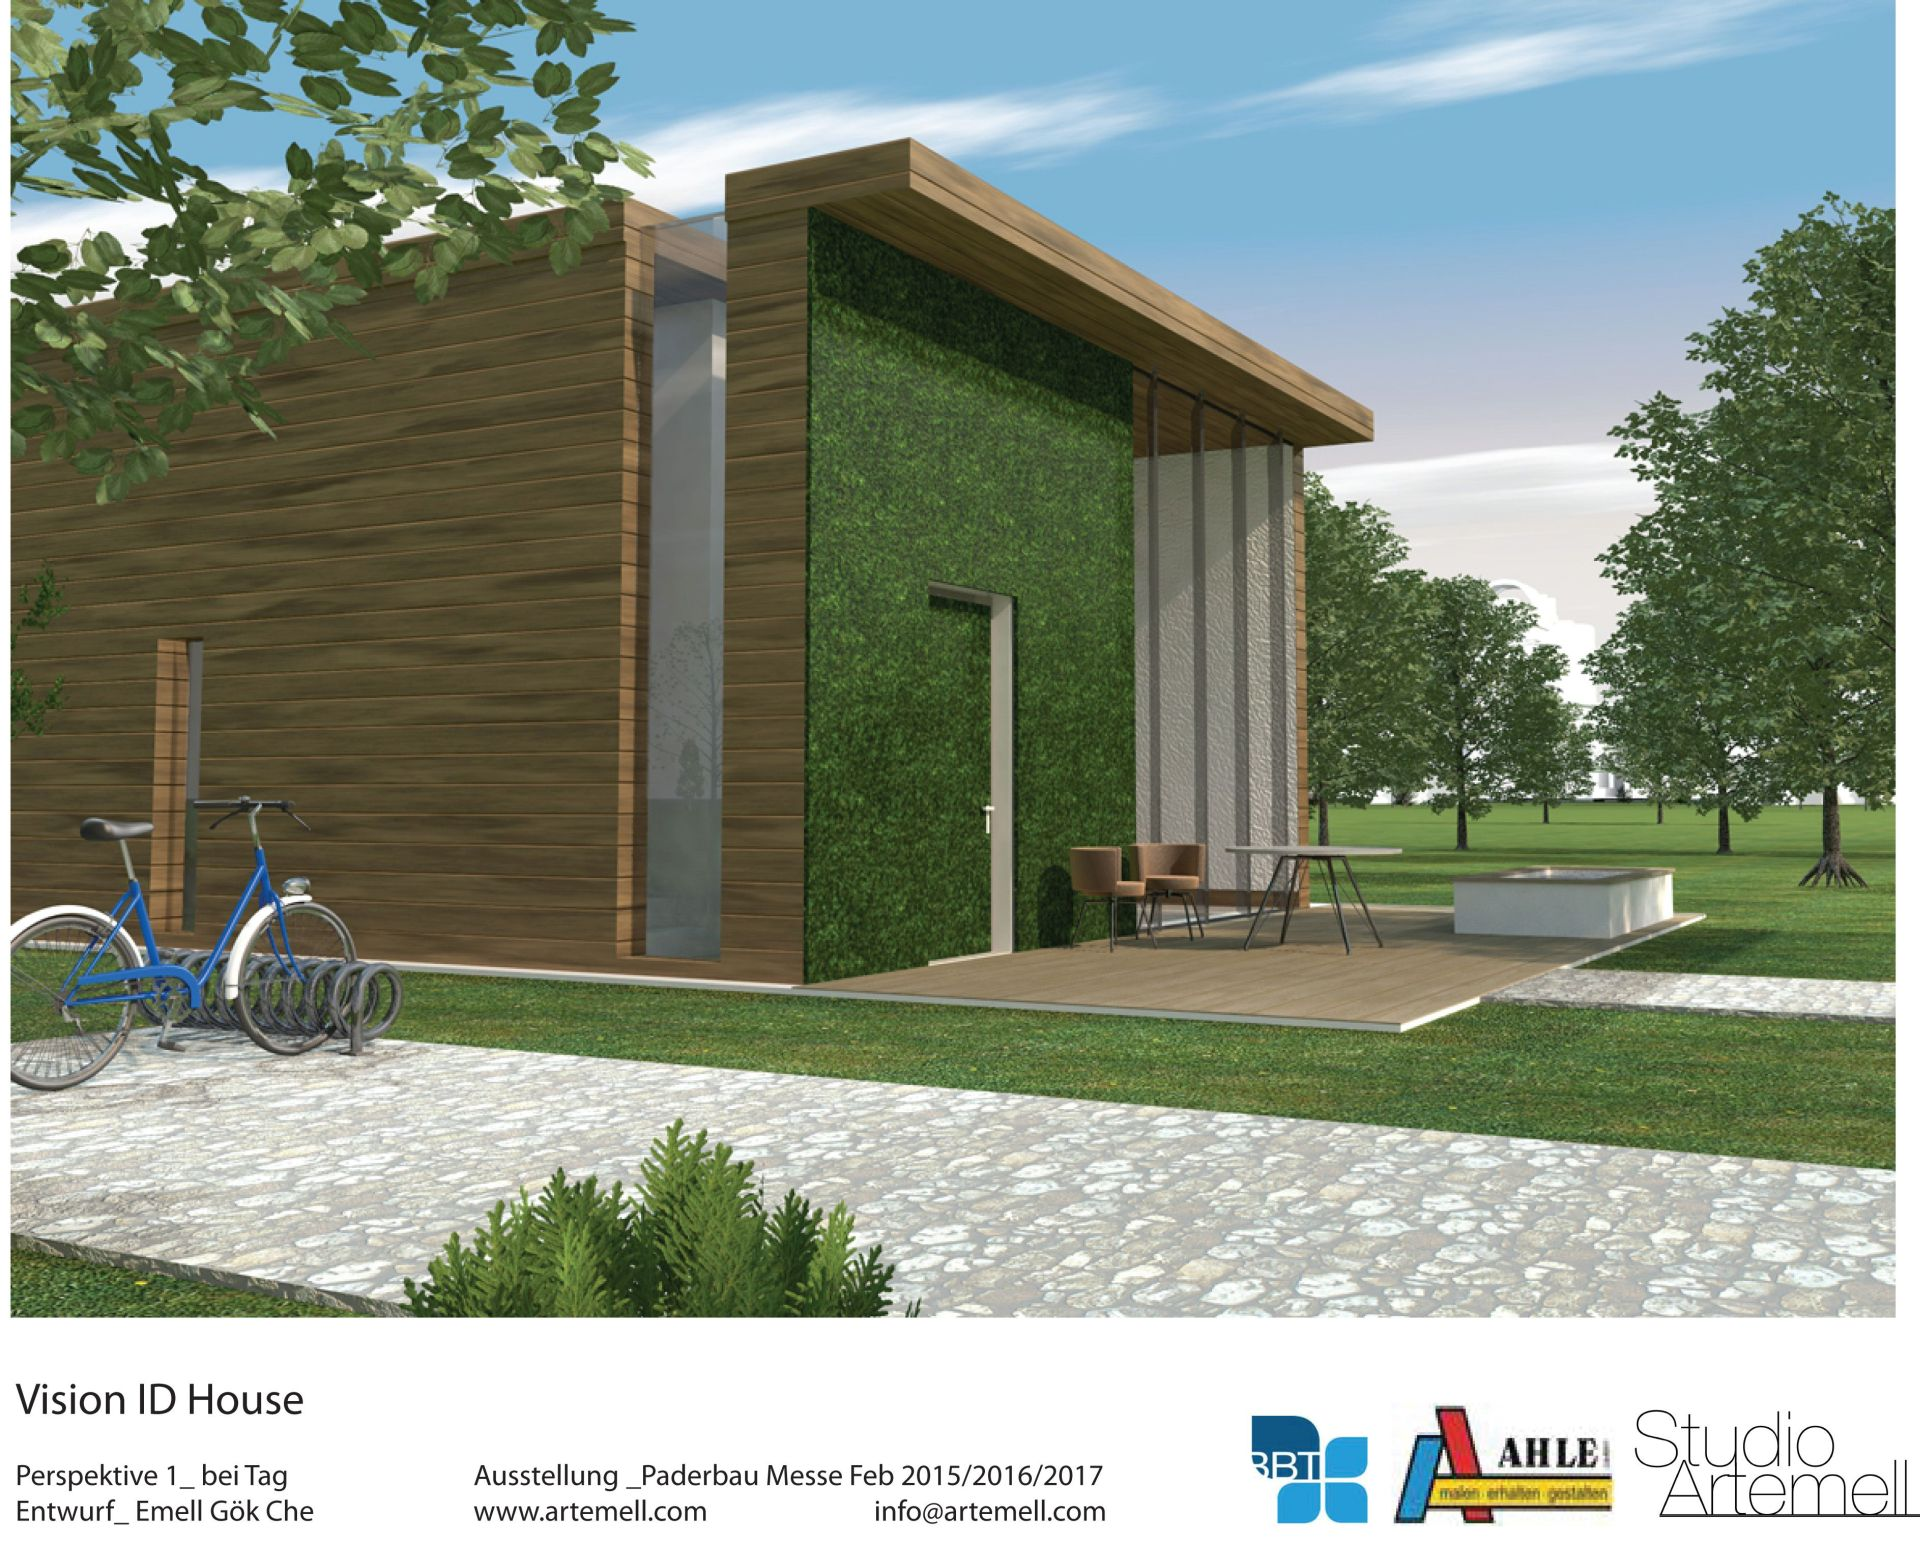 Vision-ID-House - Innovation - Malermeister Ahle